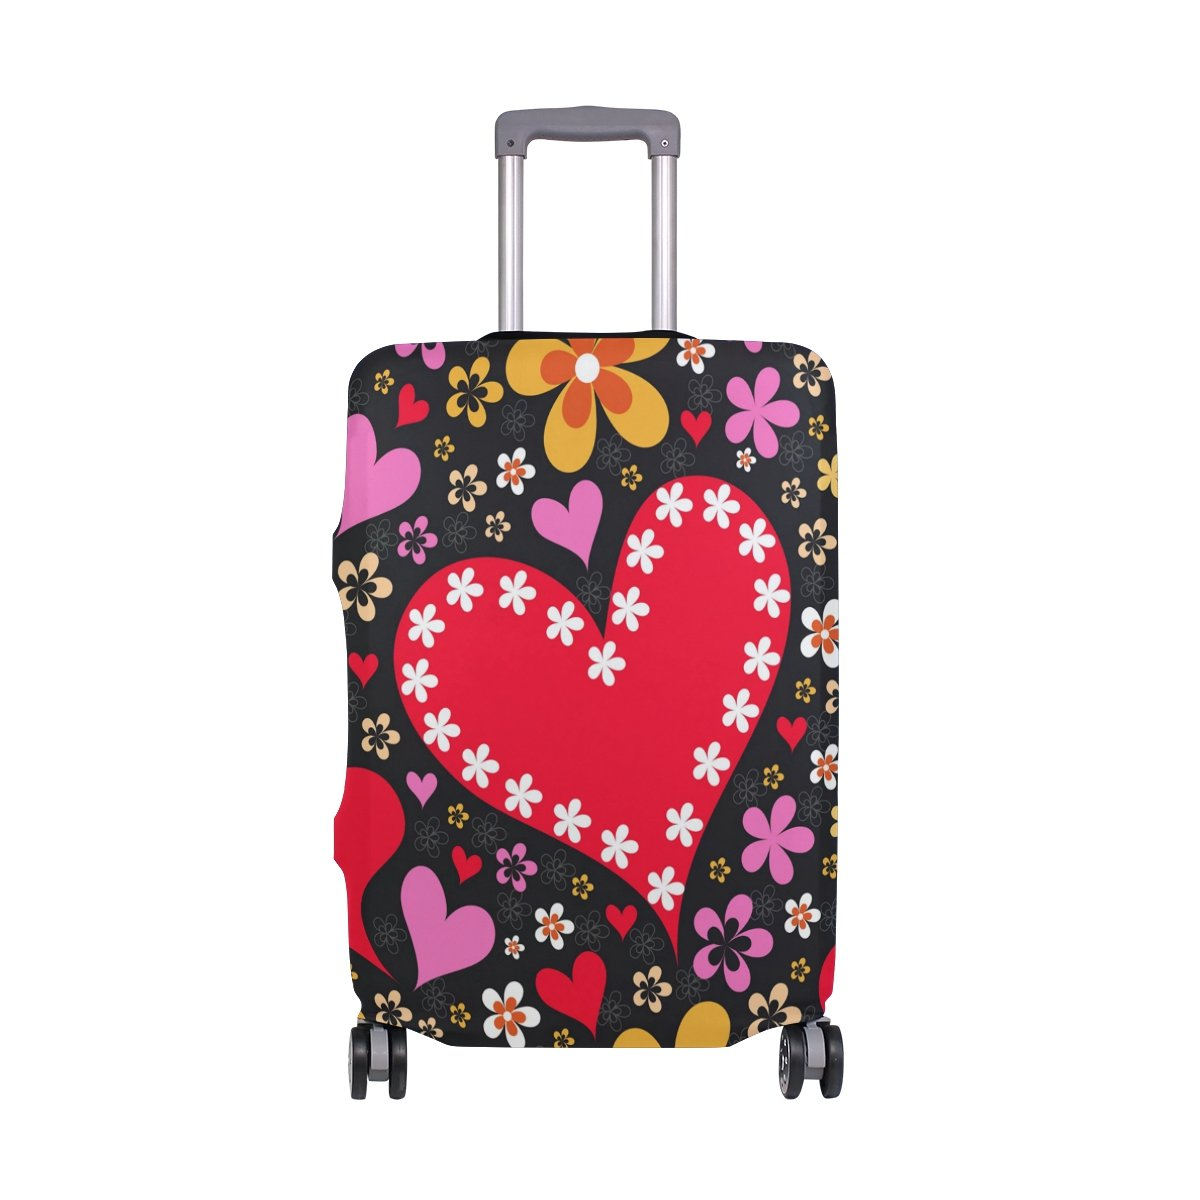 Hippie Love Birthday Valentines Heart Floral Flowers Suitcase Luggage Cover Protector for Travel Kids Men Women